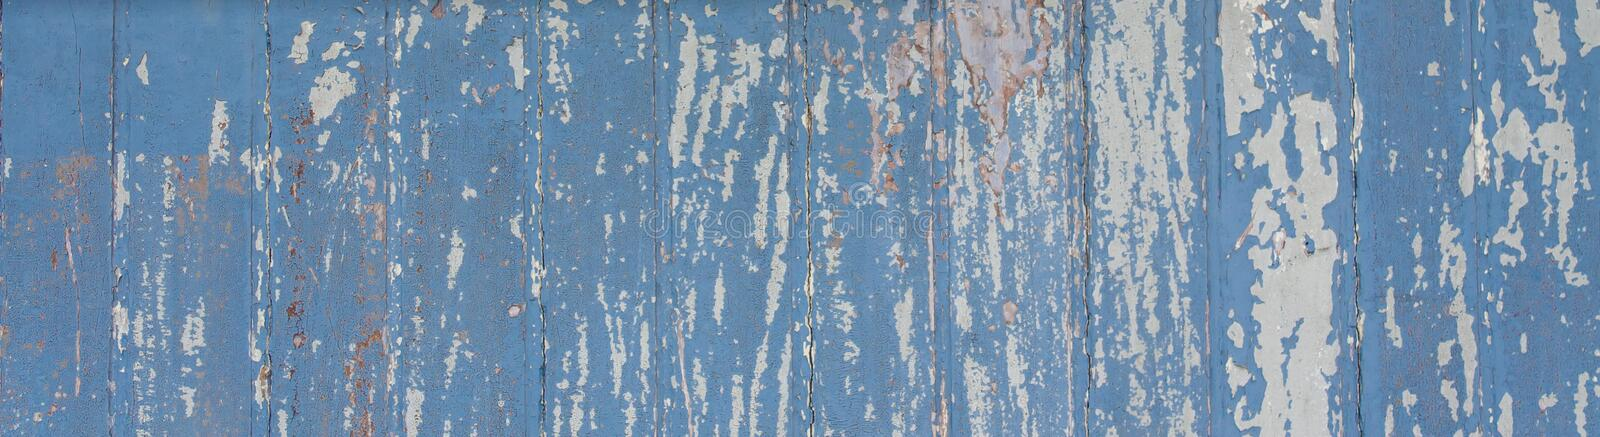 Blue painted wooden wall plank to the frame as simple peeling paint timber old grungy weathered wood surface texture background. Blue painted wooden wall plank royalty free stock photo